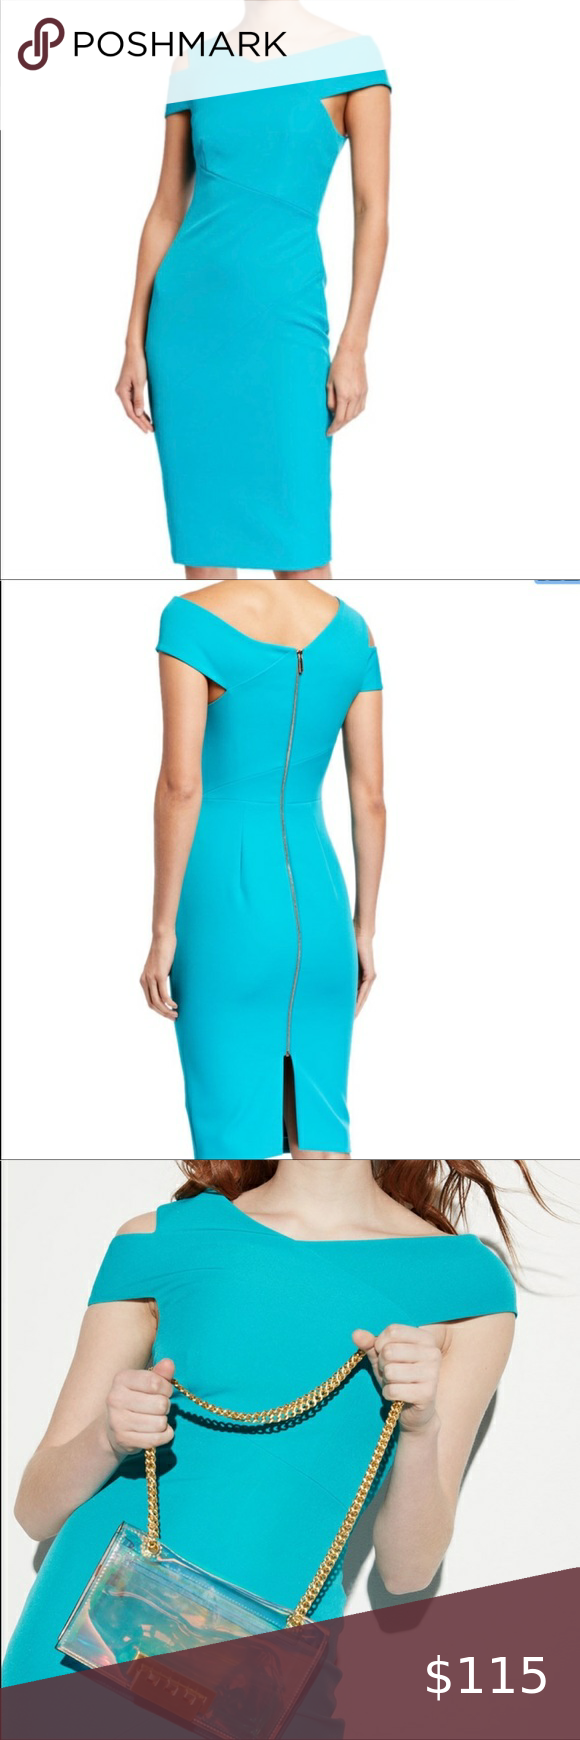 Nwt Ted Baker Turquoise Yandal Bodycon Dress In 2021 Printed Sweater Dress Bodycon Dress Striped Bodycon Dress [ 1740 x 580 Pixel ]